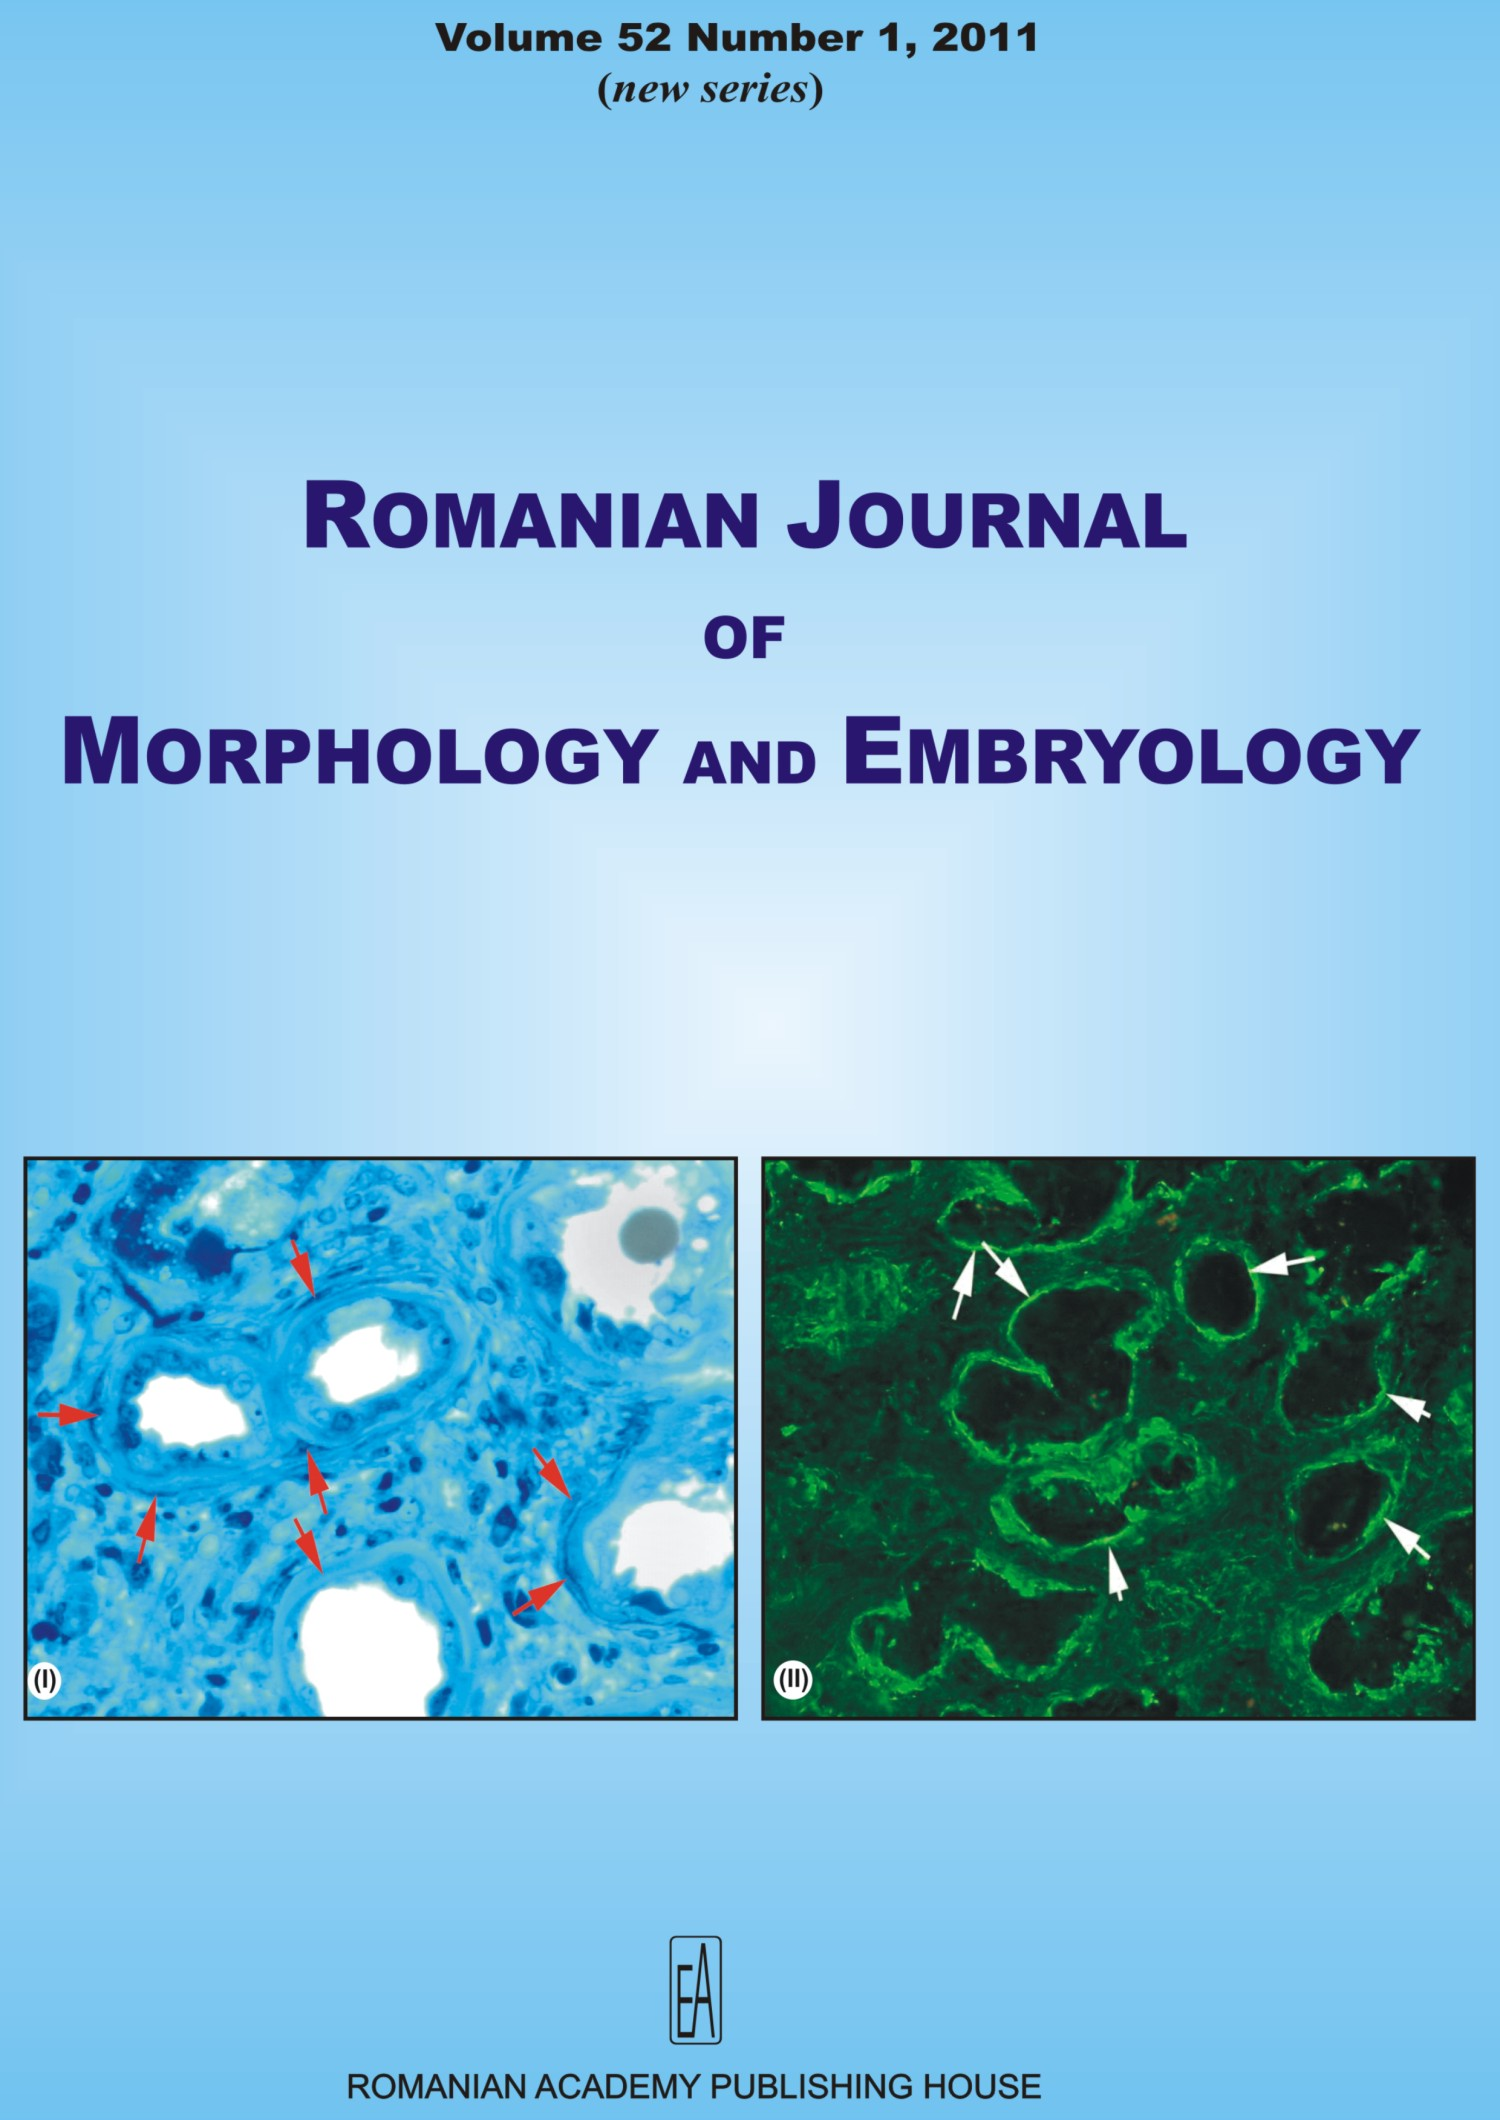 Romanian Journal of Morphology and Embryology, vol. 52 no. 1, 2011